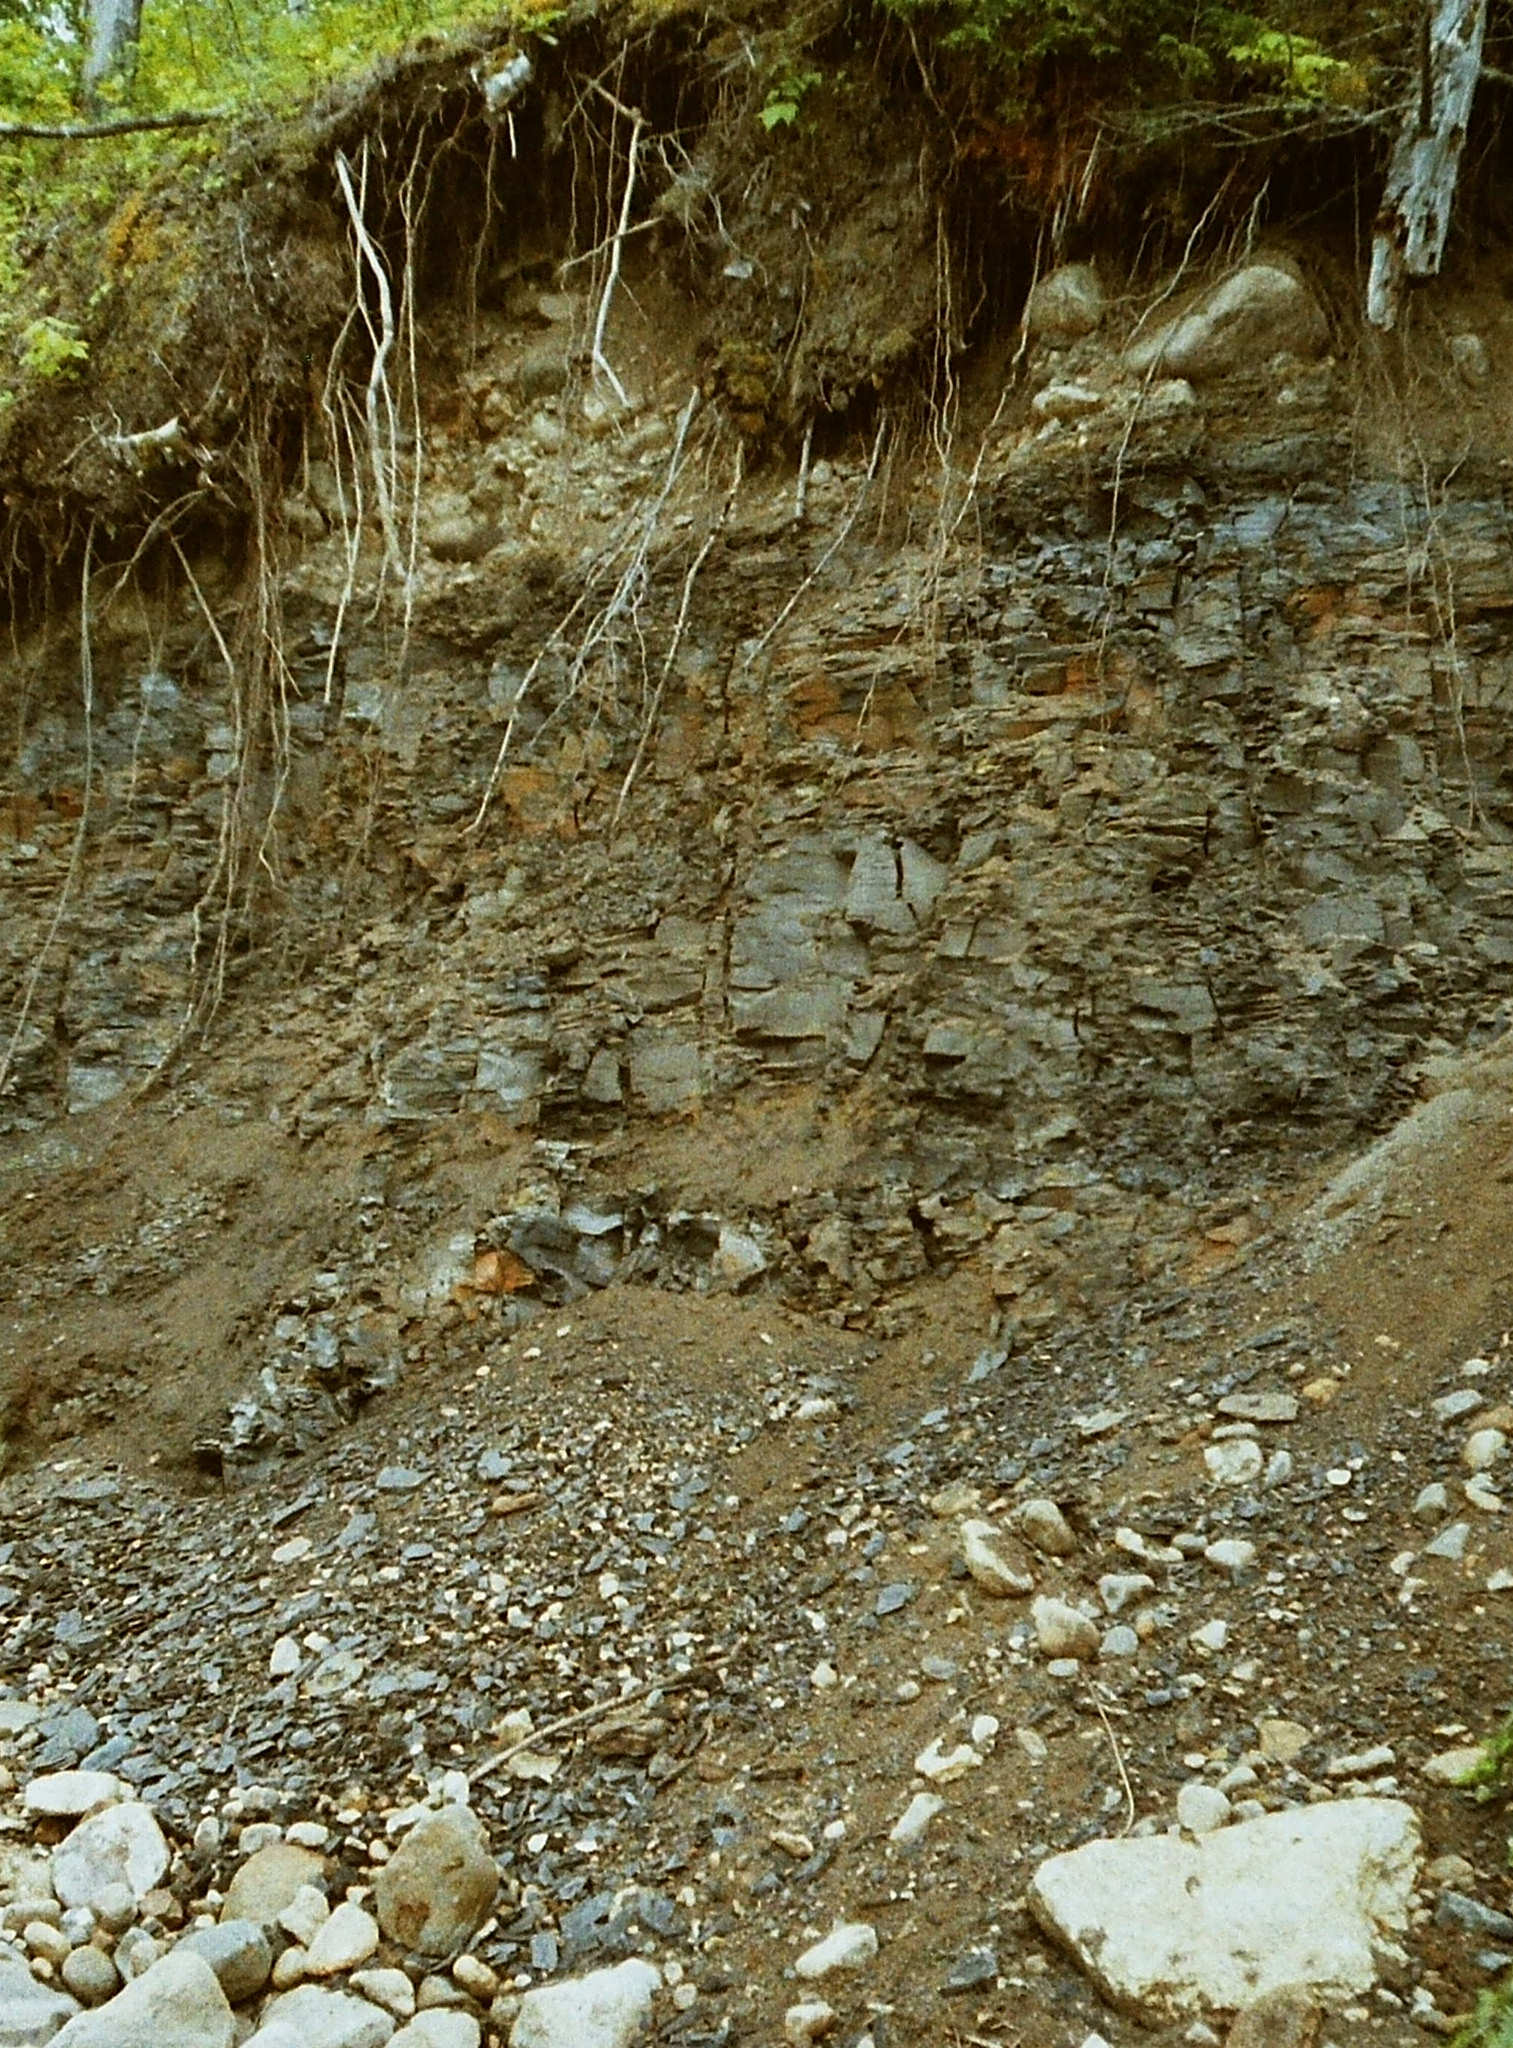 A shale outcrop in the Pasquia Hills, Saskatchewan, approximately 93 million year old .  (Vanin)